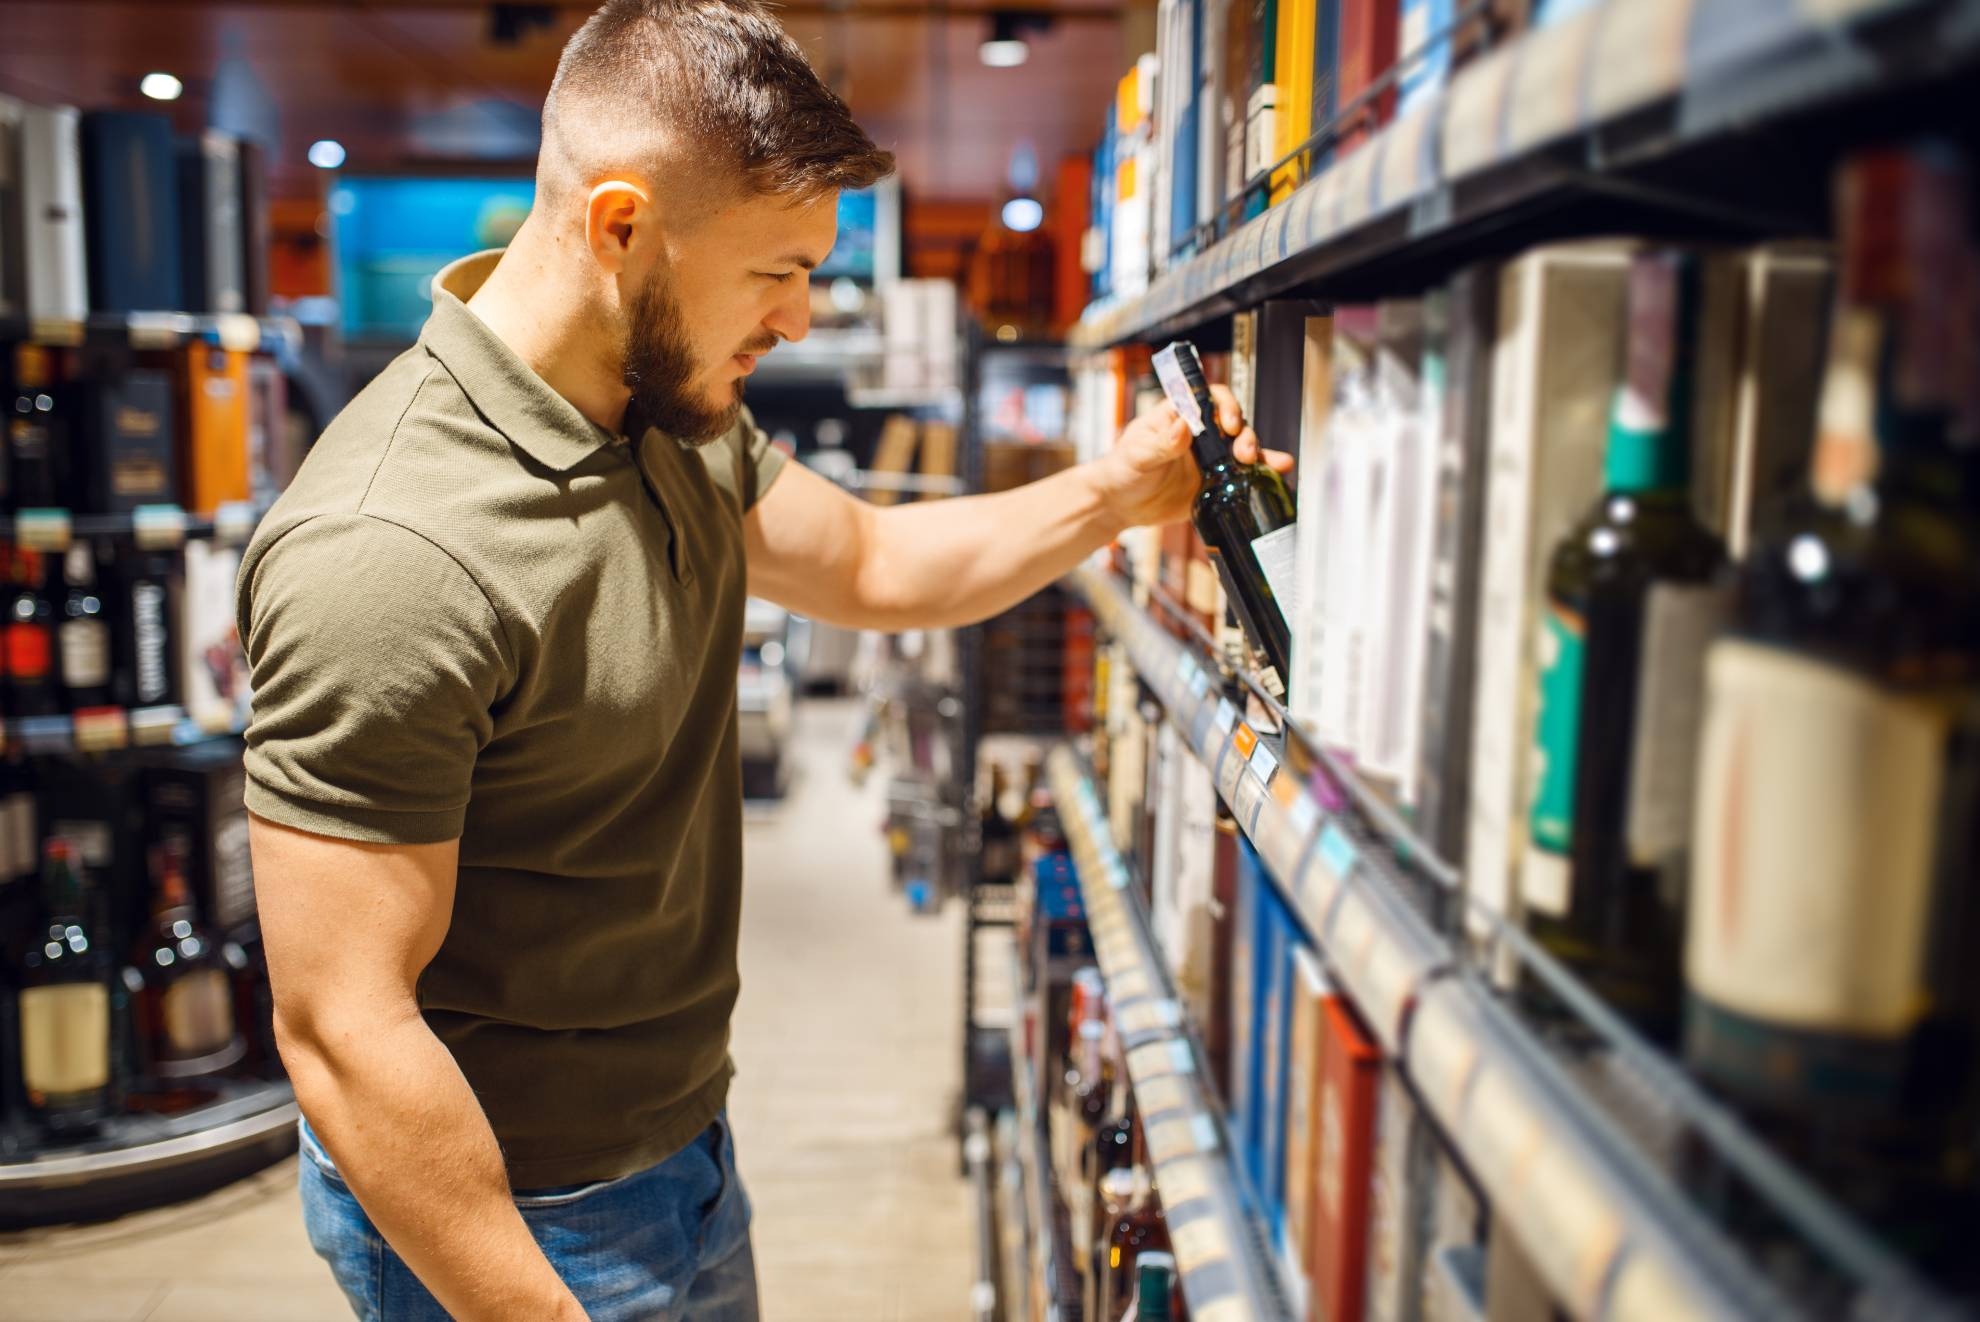 man-choosing-alcohol-products-in-grocery-store-KW7HXQN (1)